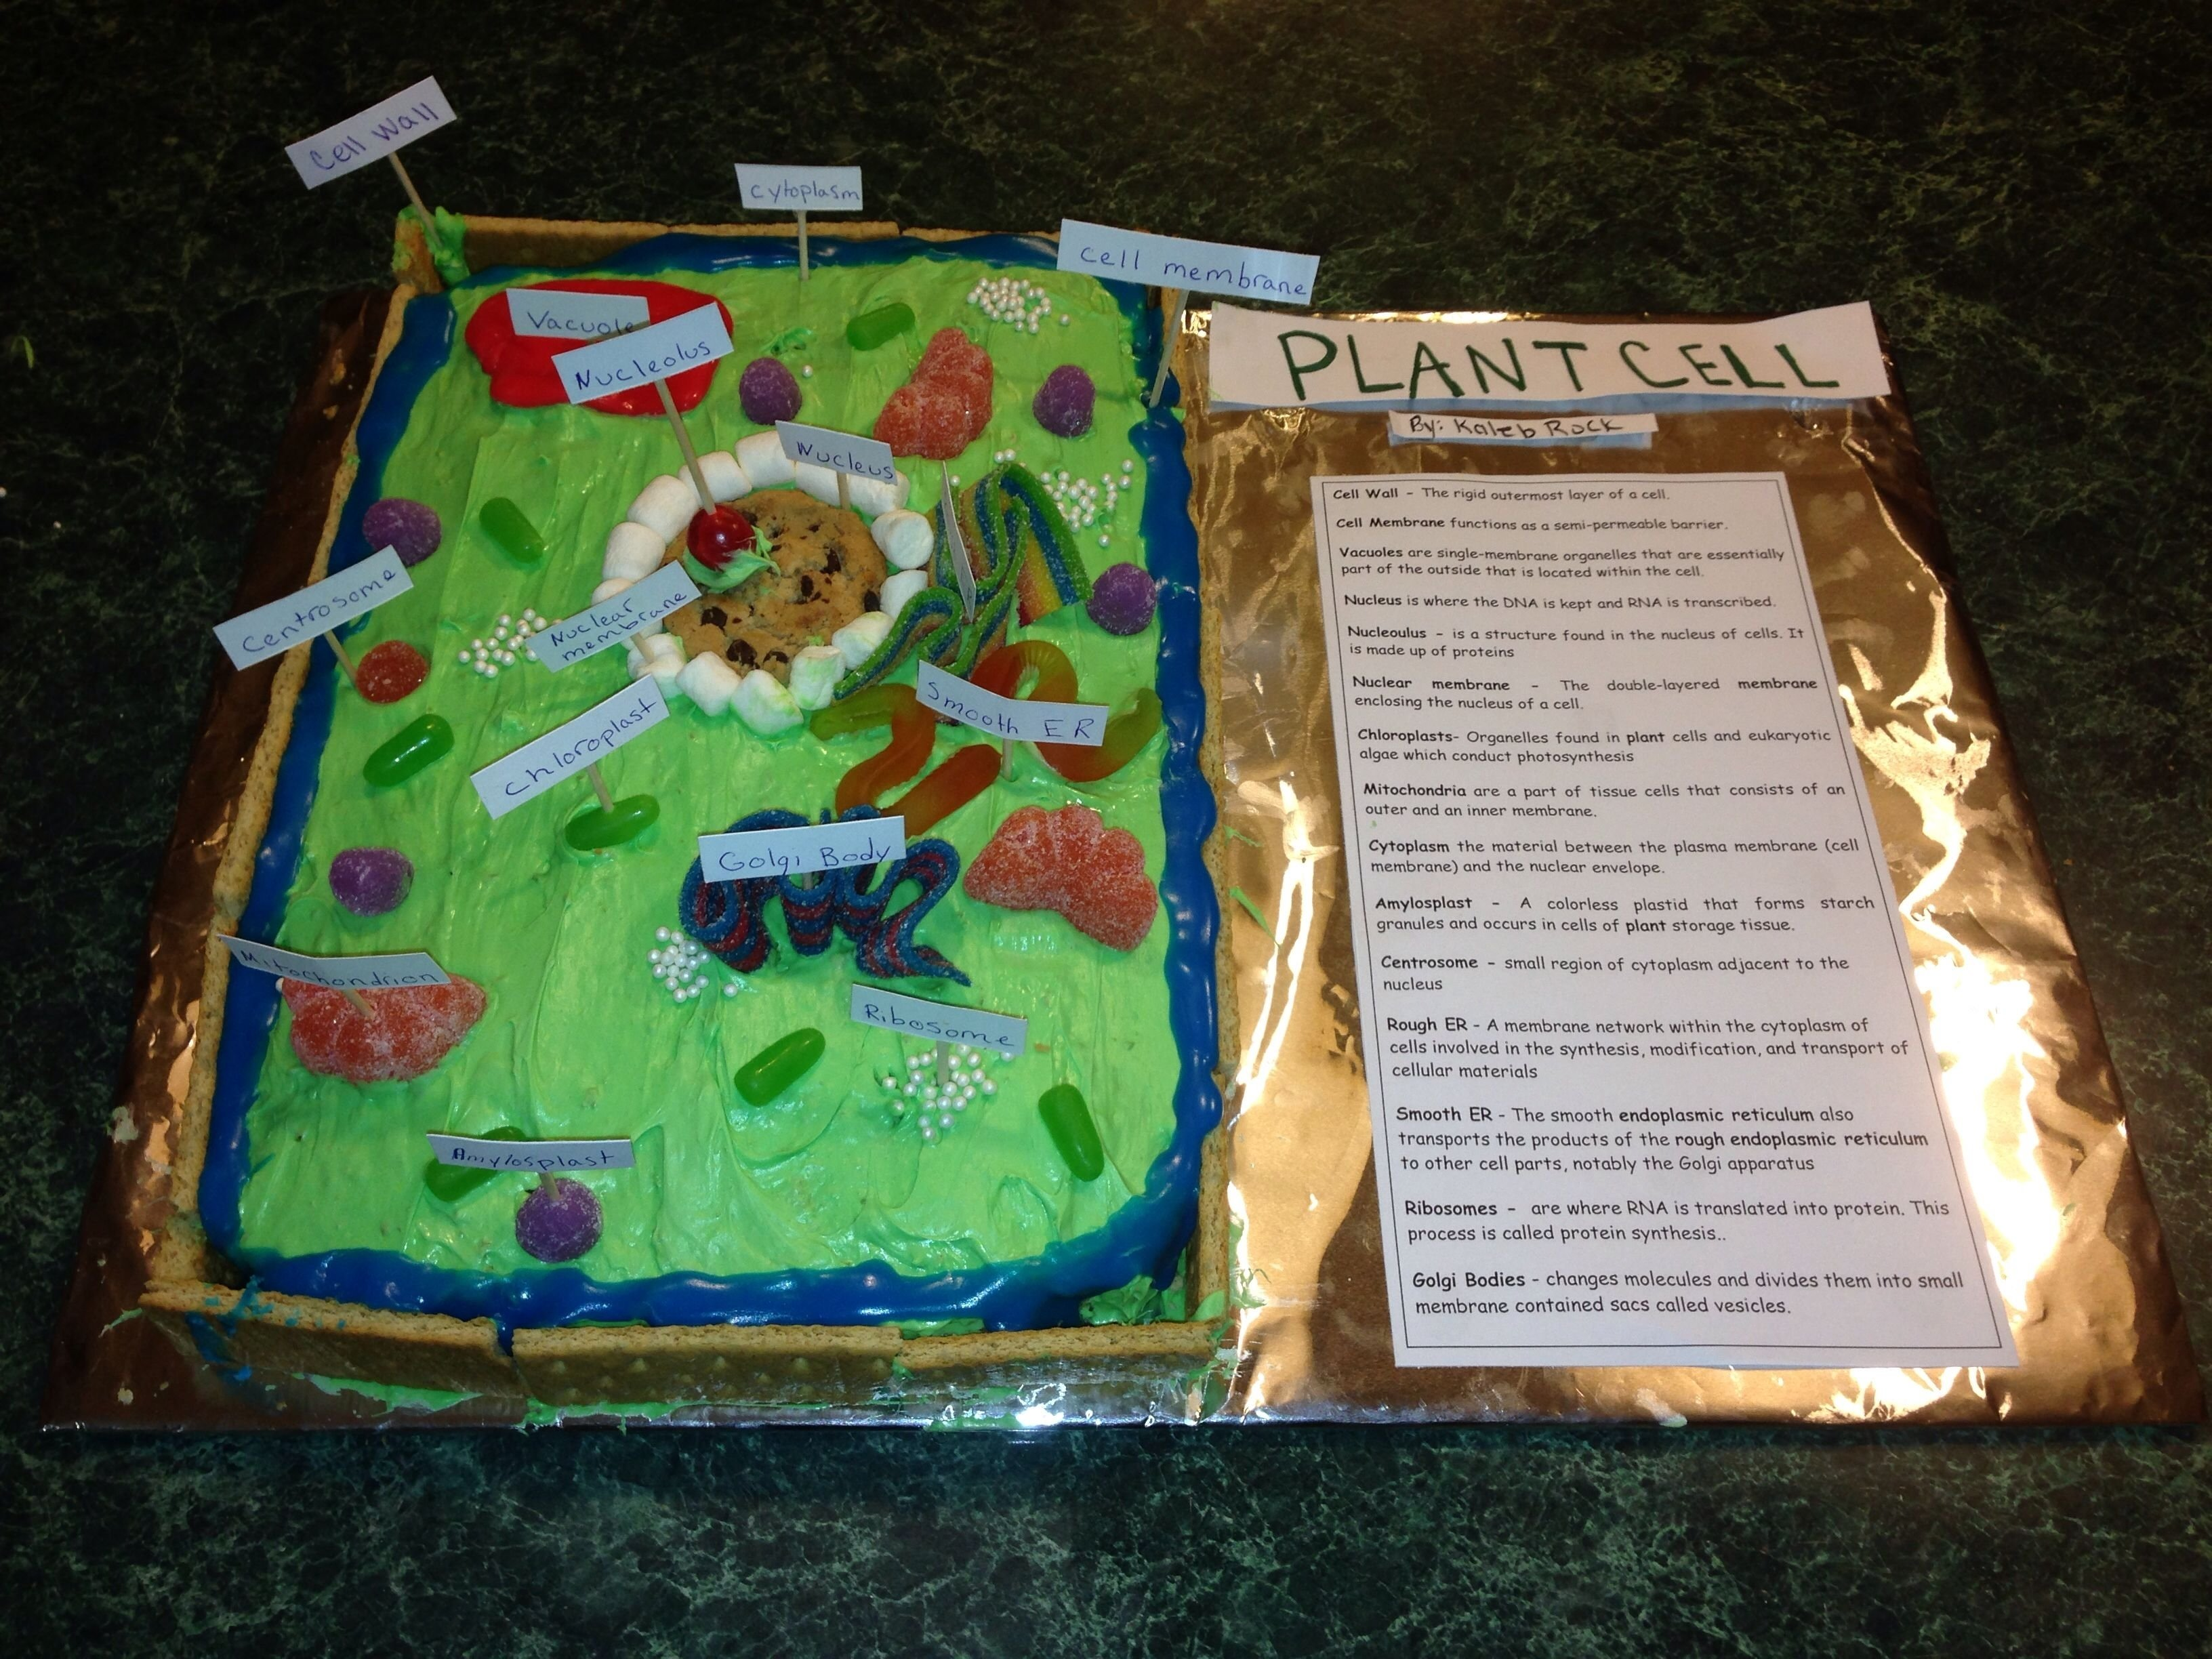 10 Stylish Plant Cell 3D Model Ideas edible plant cell 5th grade project learning pinterest plant 2021